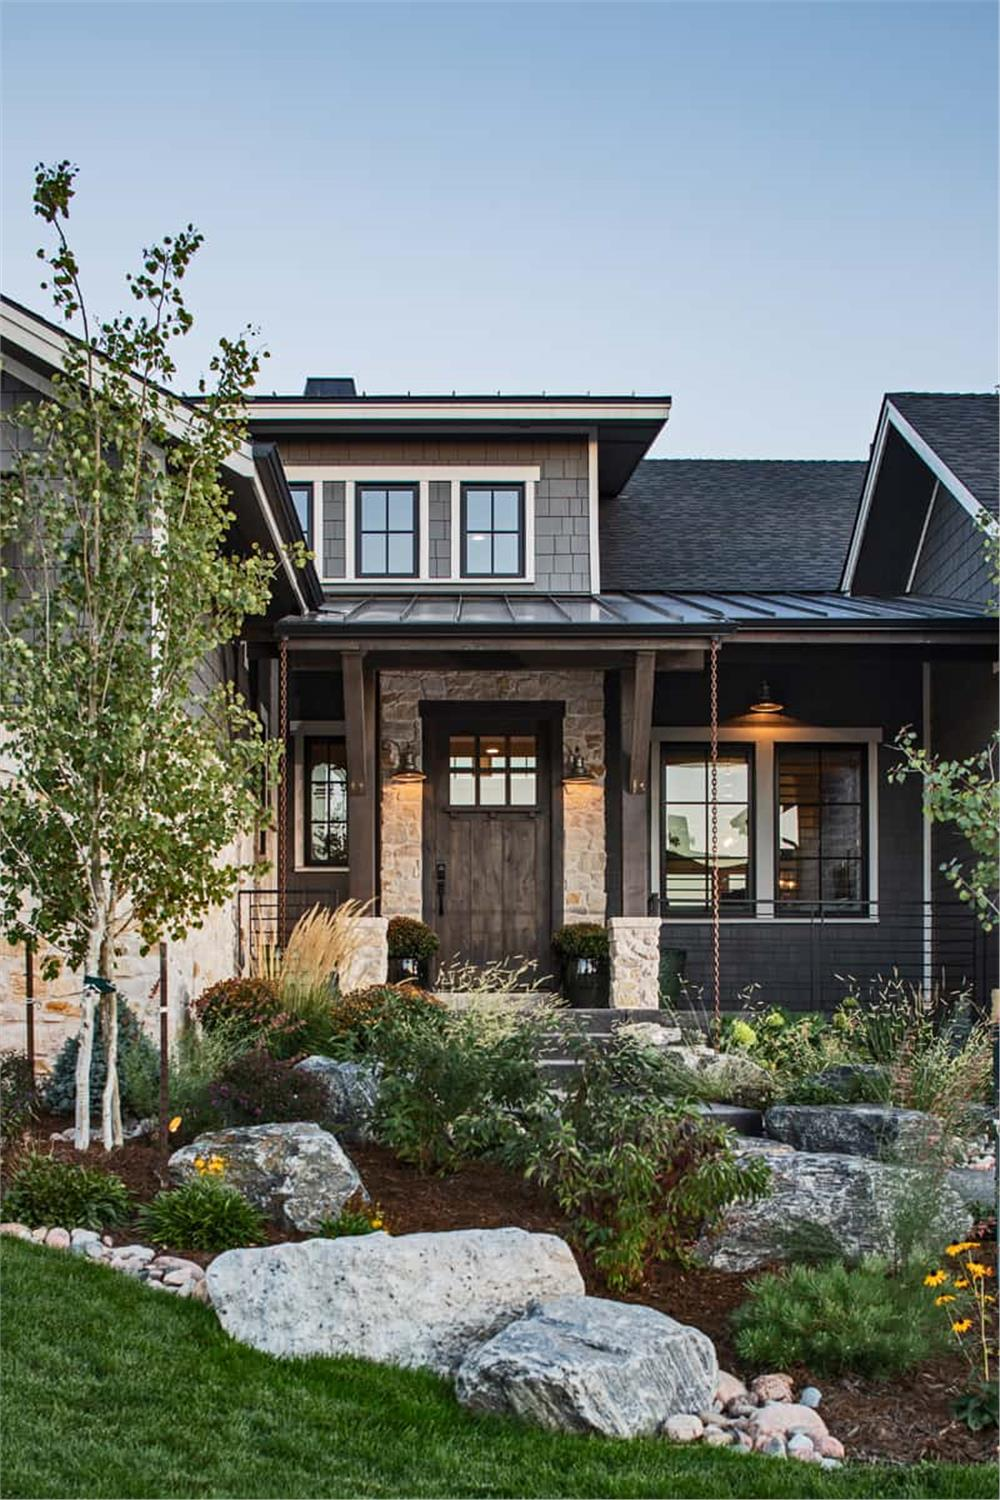 Landscaped entrance at the front door of a Country Ranch style home